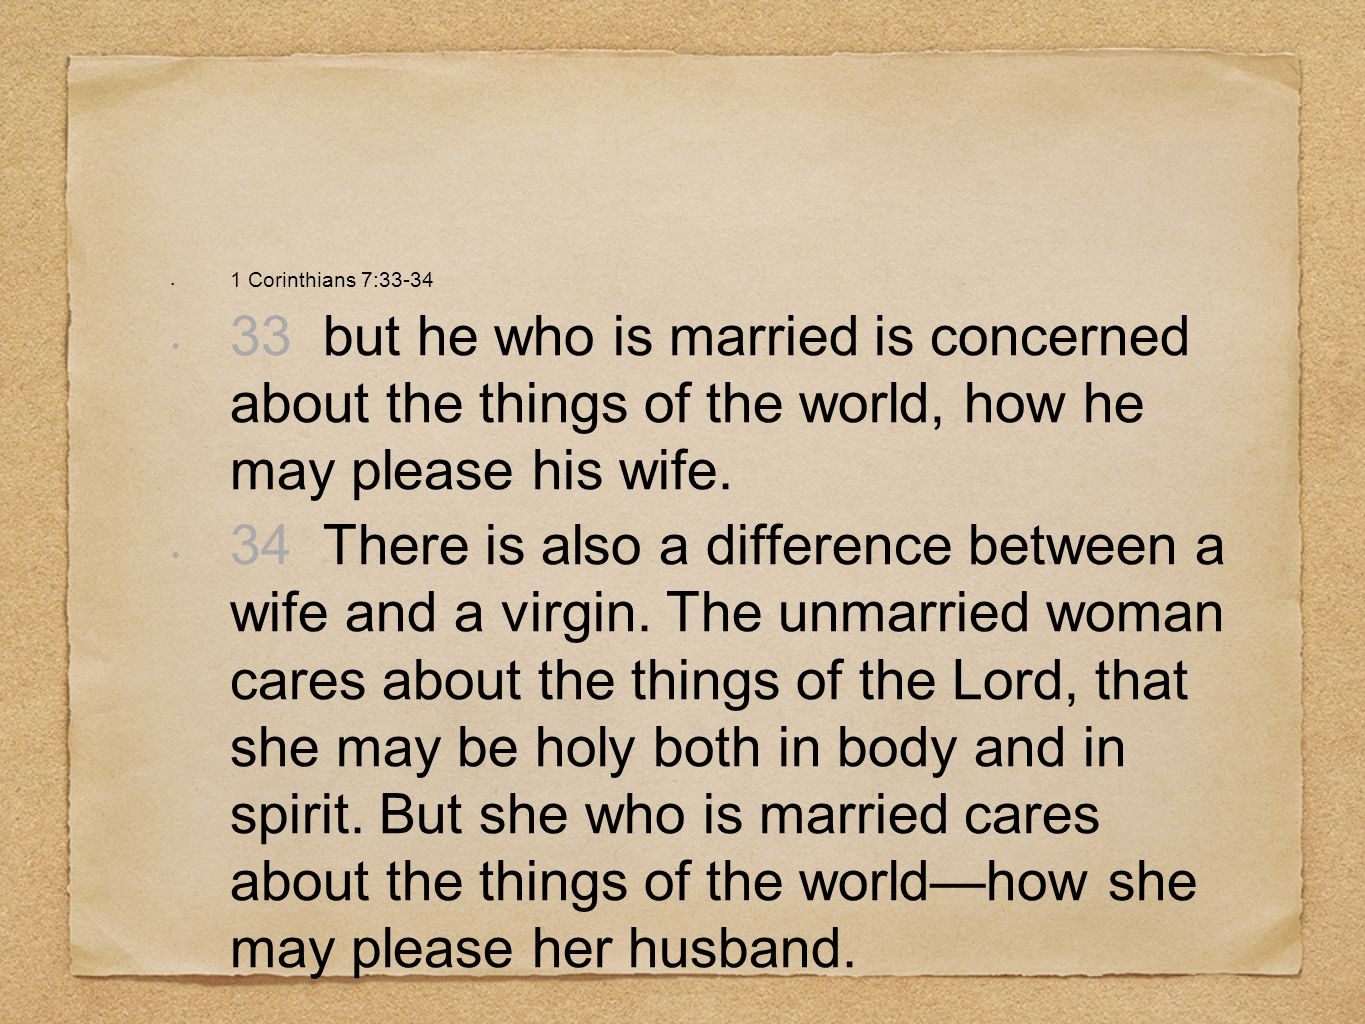 1 Corinthians 7: but he who is married is concerned about the things of the world, how he may please his wife.